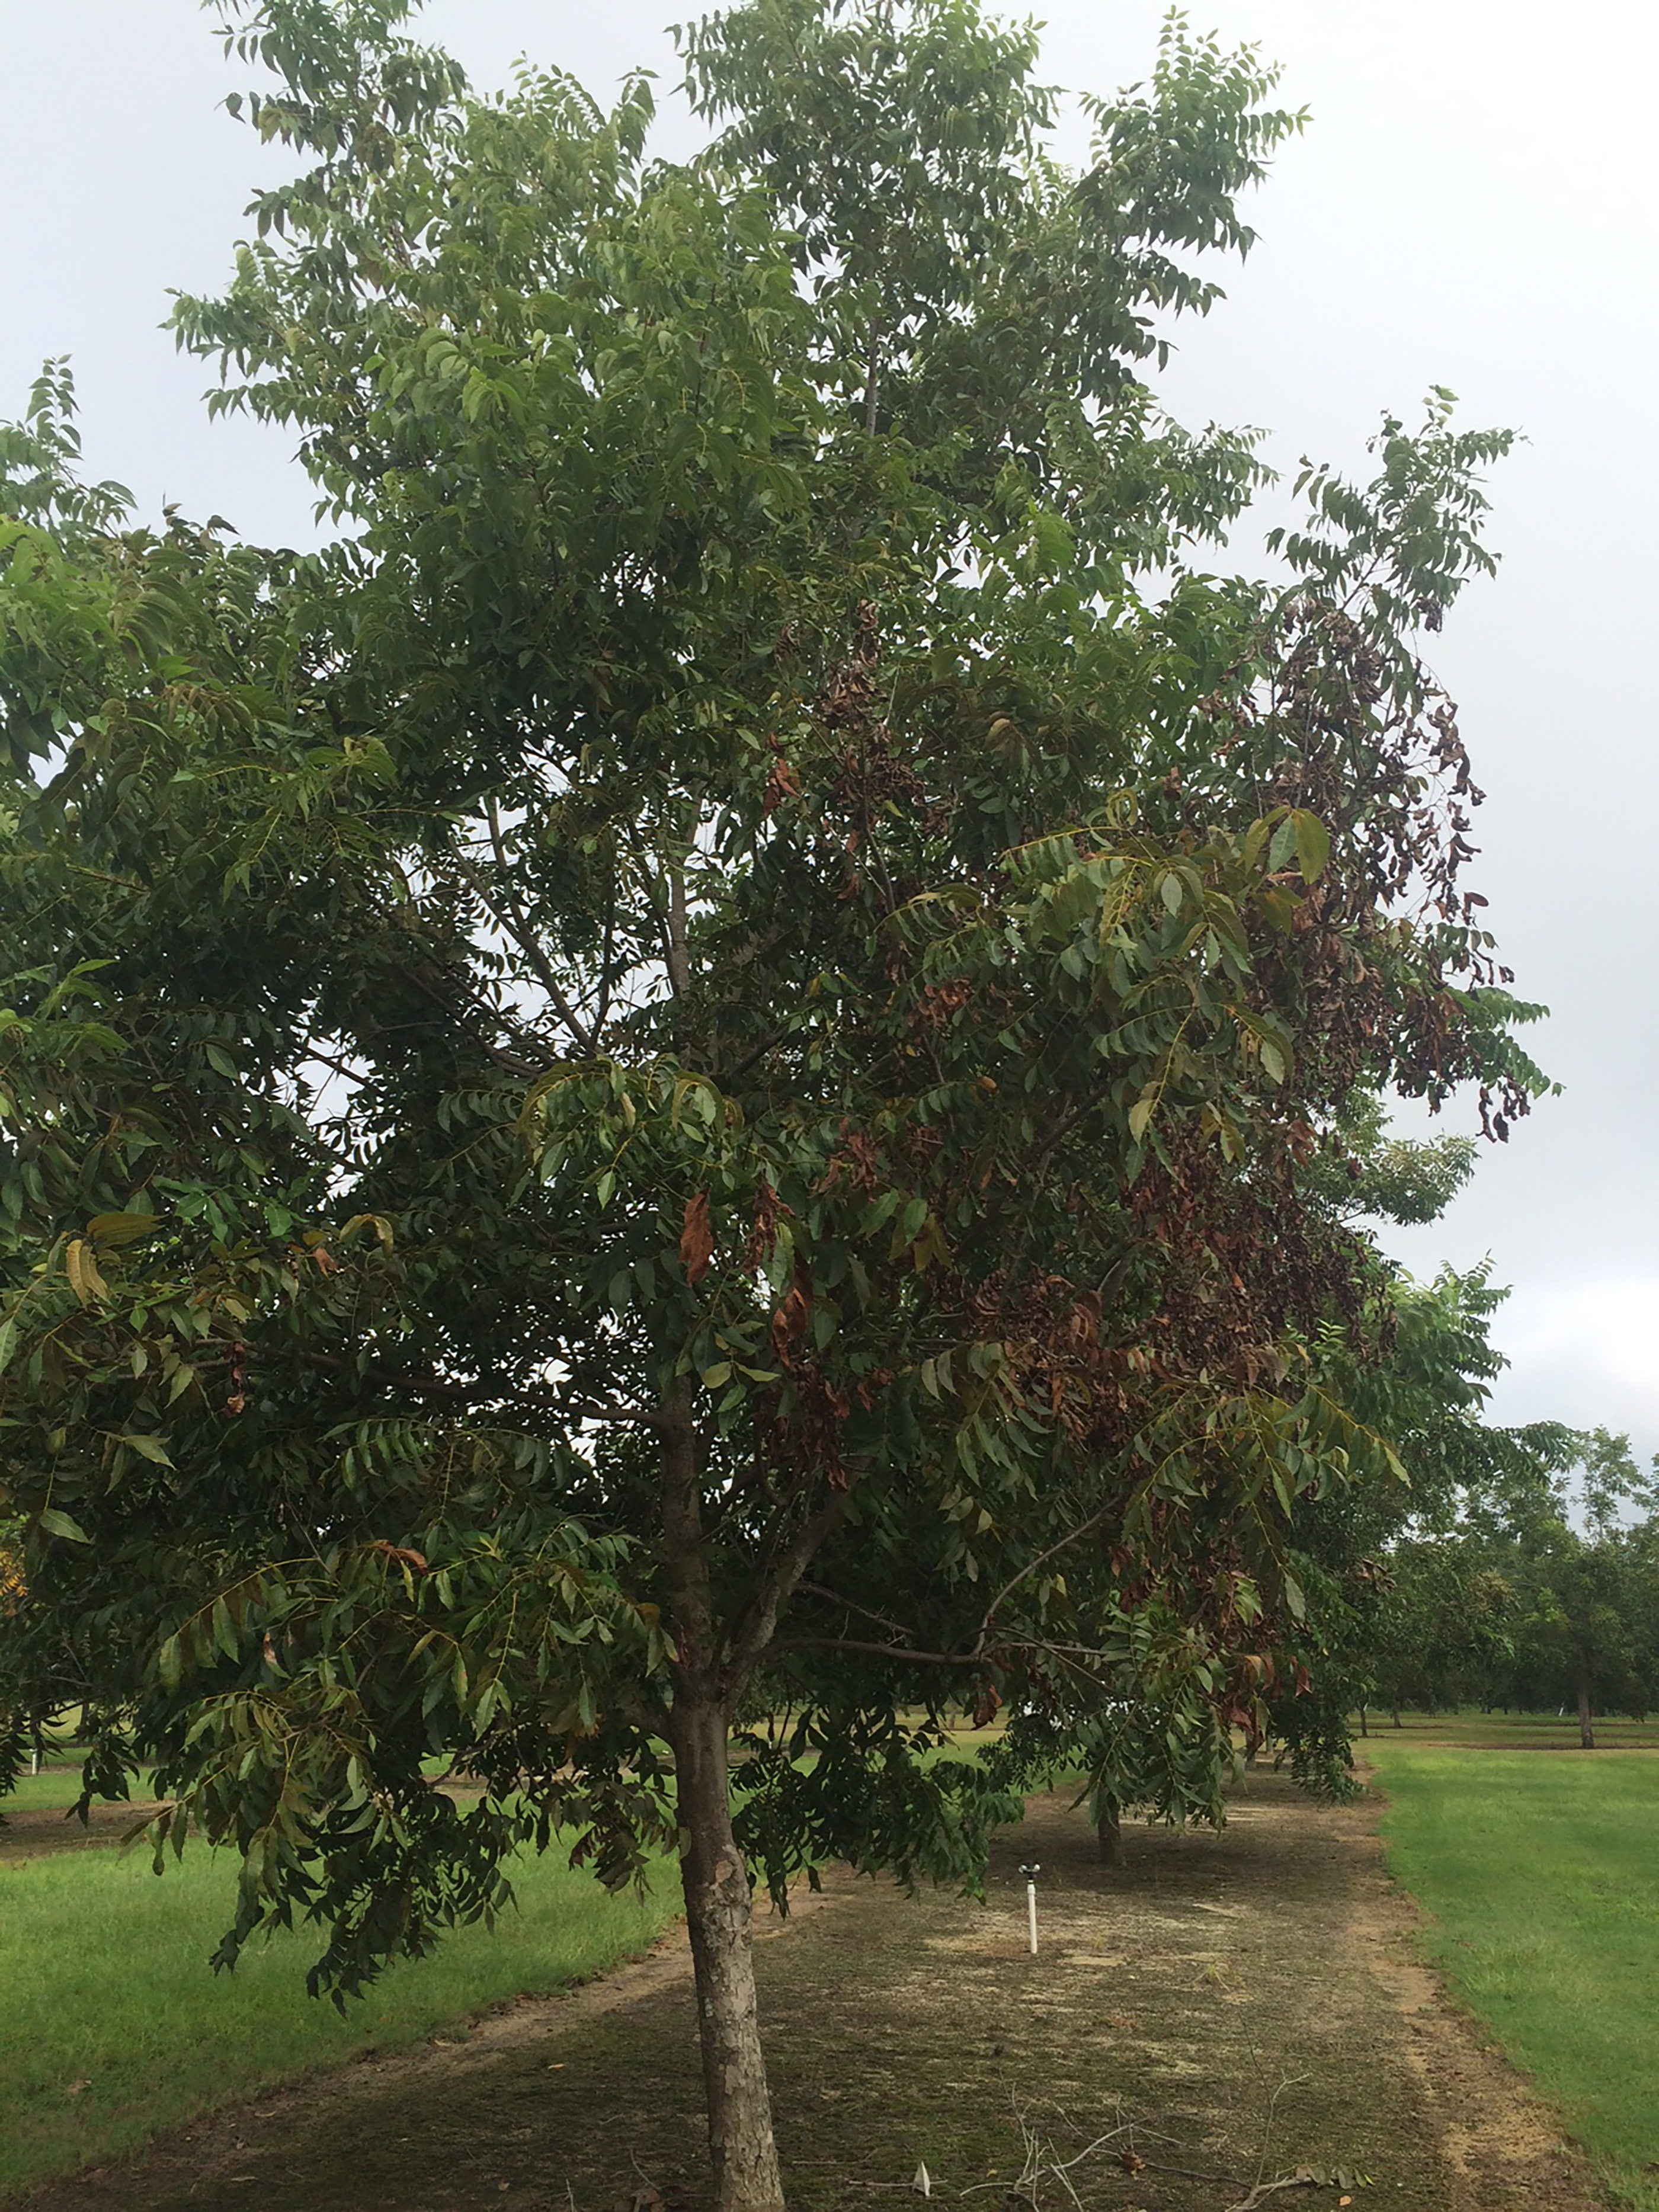 Pecan tree shows damage from research study.